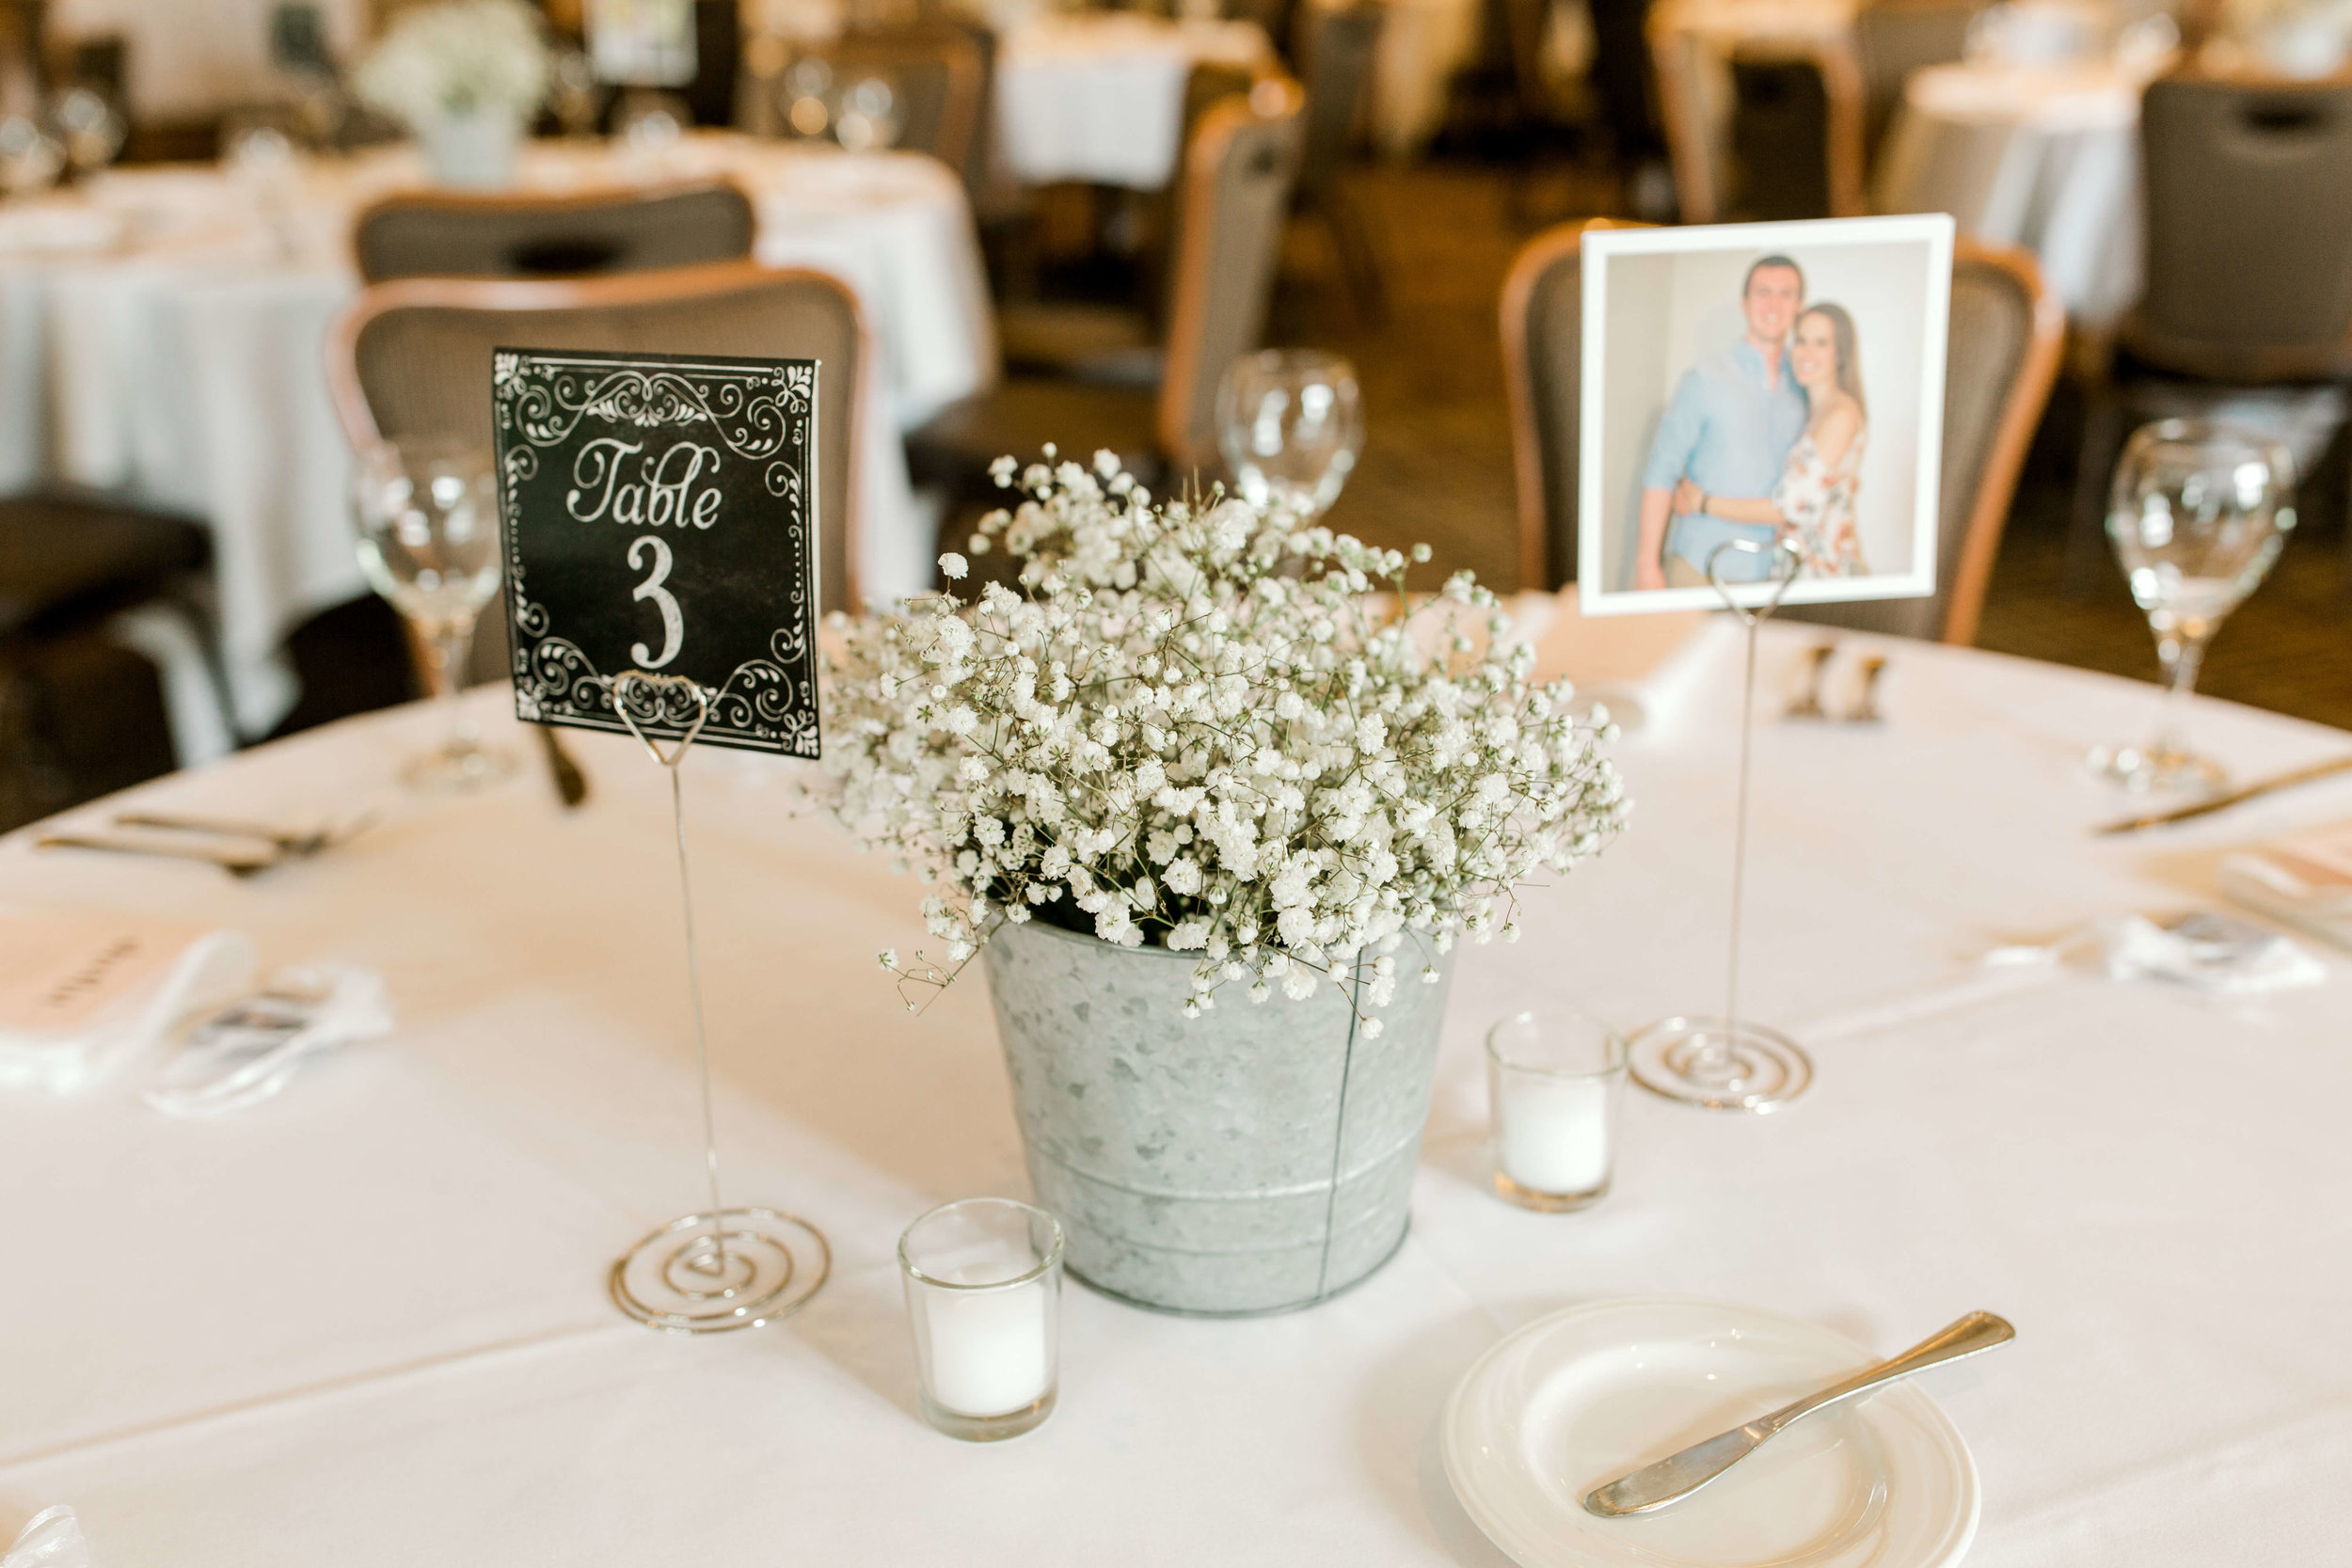 queen anne's lace in tin bucket wedding centerpiece | Lauren Baker Photography | Sixpence Events Blog Post: Must Have Wedding Photography Tips